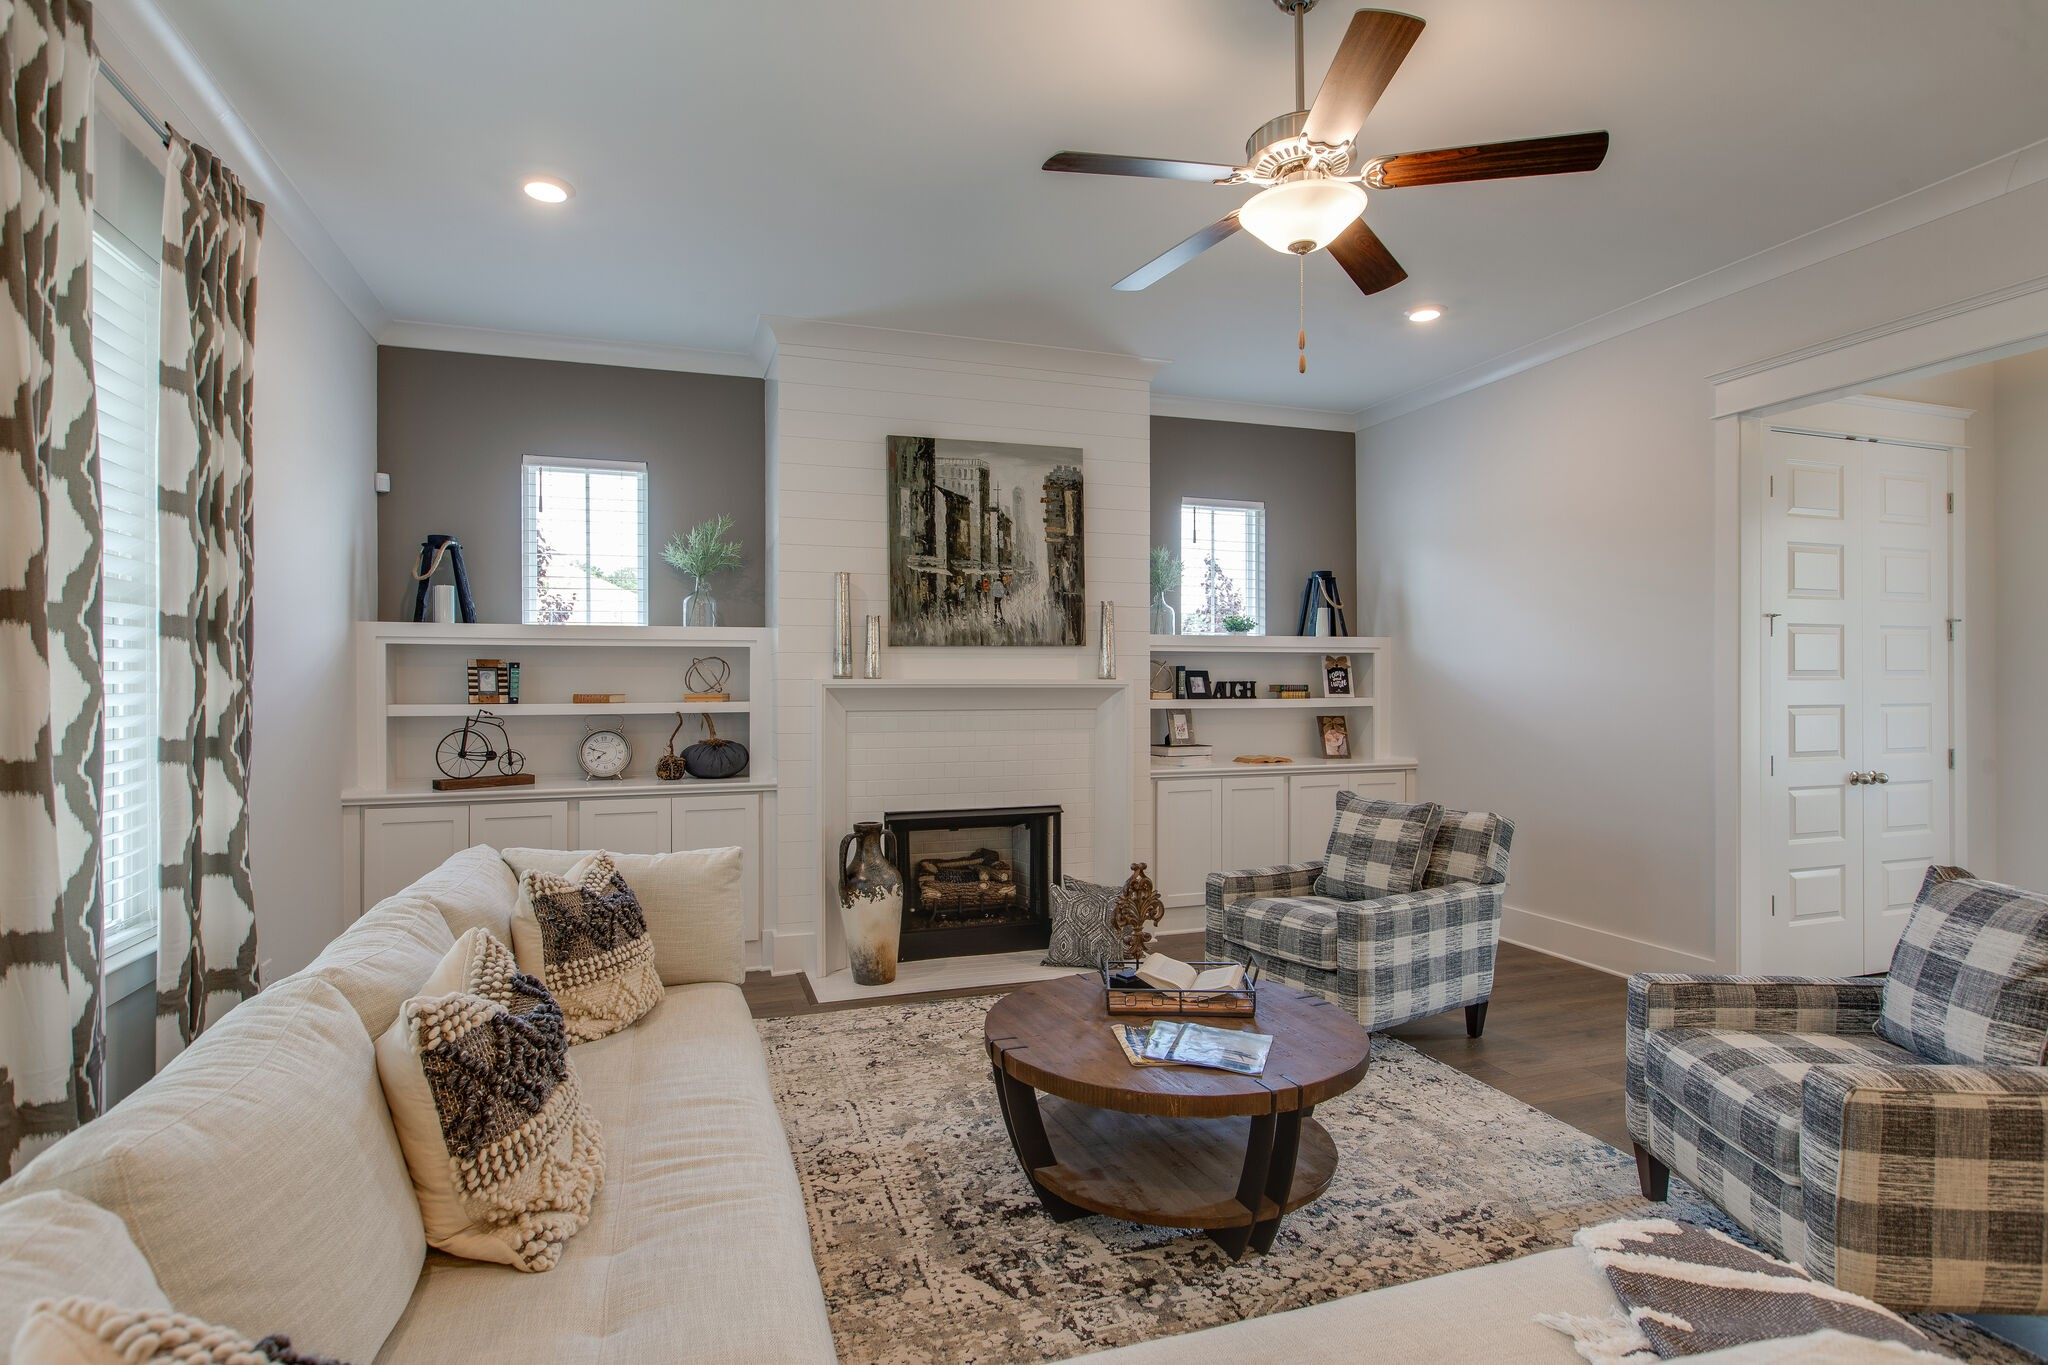 1824 Paisley Drive #342 Property Photo - Nolensville, TN real estate listing